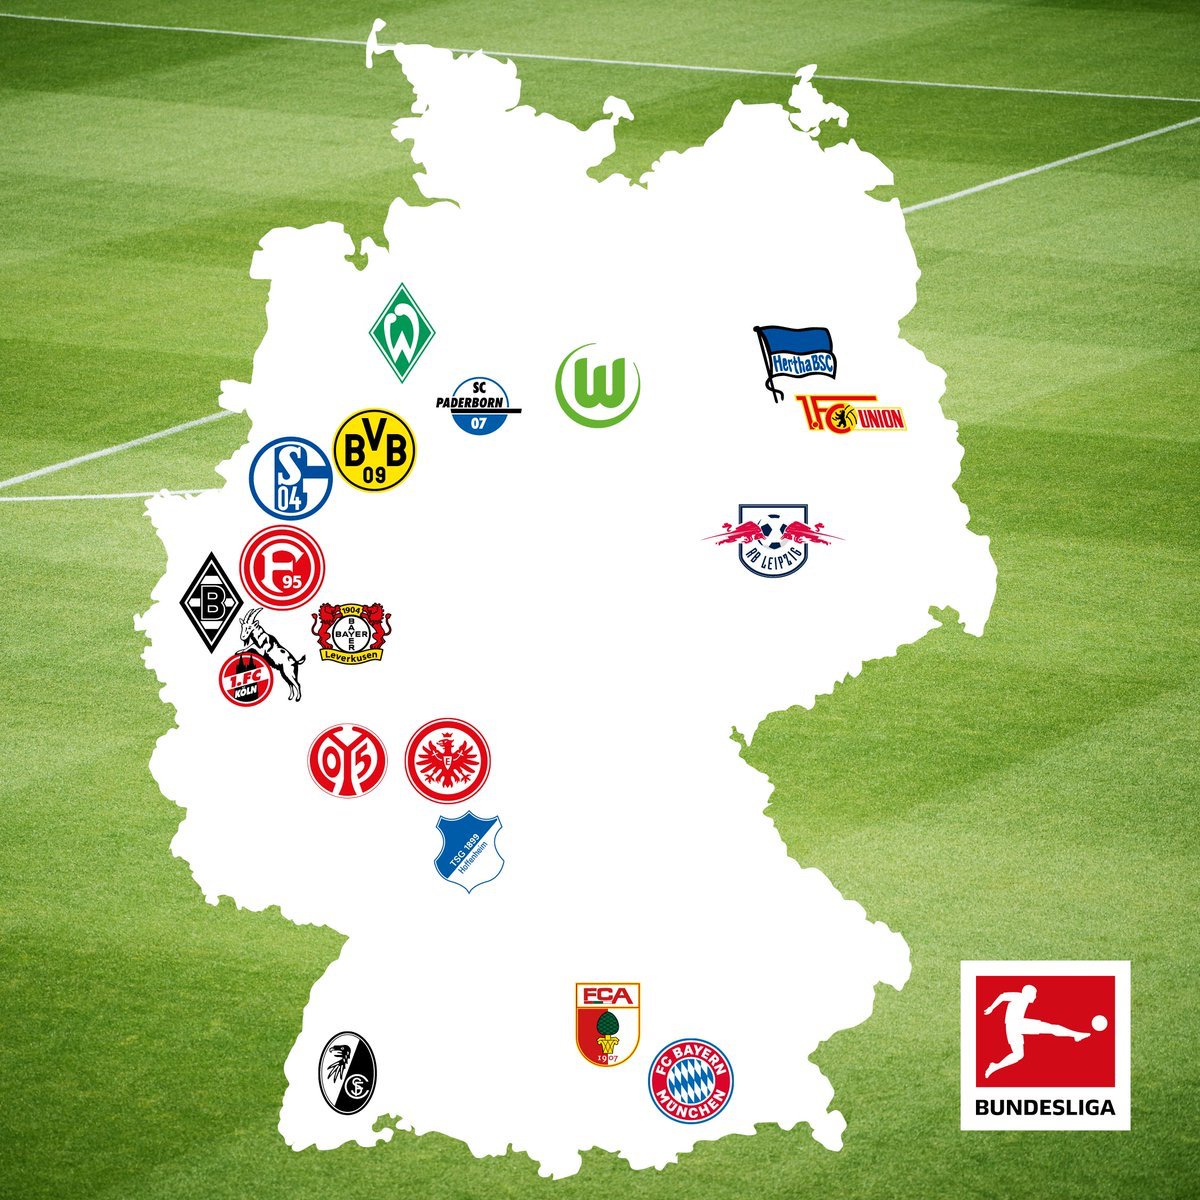 Uzivatel Get German Football News Na Twitteru Feature Putting Bundesliga Teams On The Map Which Team Has To Travel The Furthest Throughout The Season Https T Co Emut2rddka Https T Co 5iurgc72hk